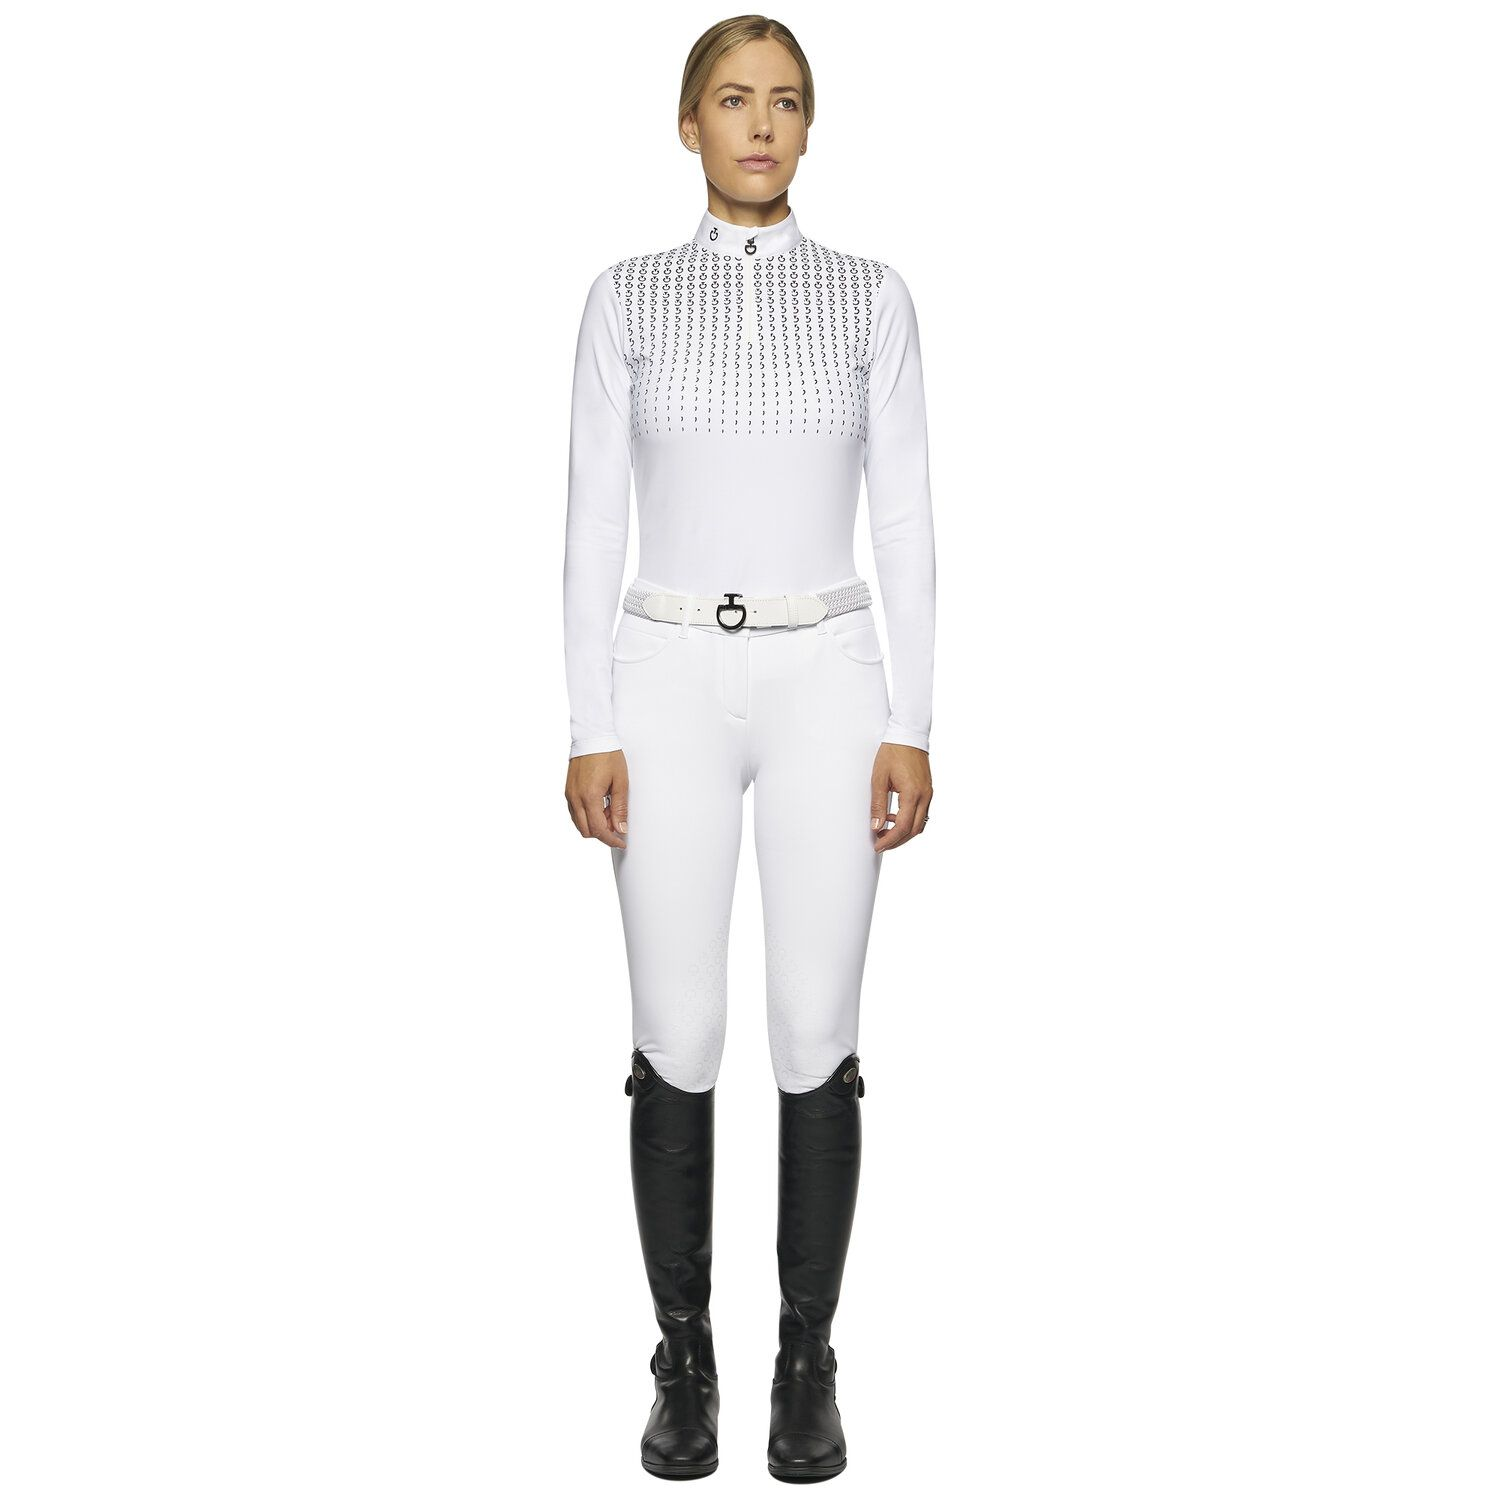 Women's competition polo long sleeve